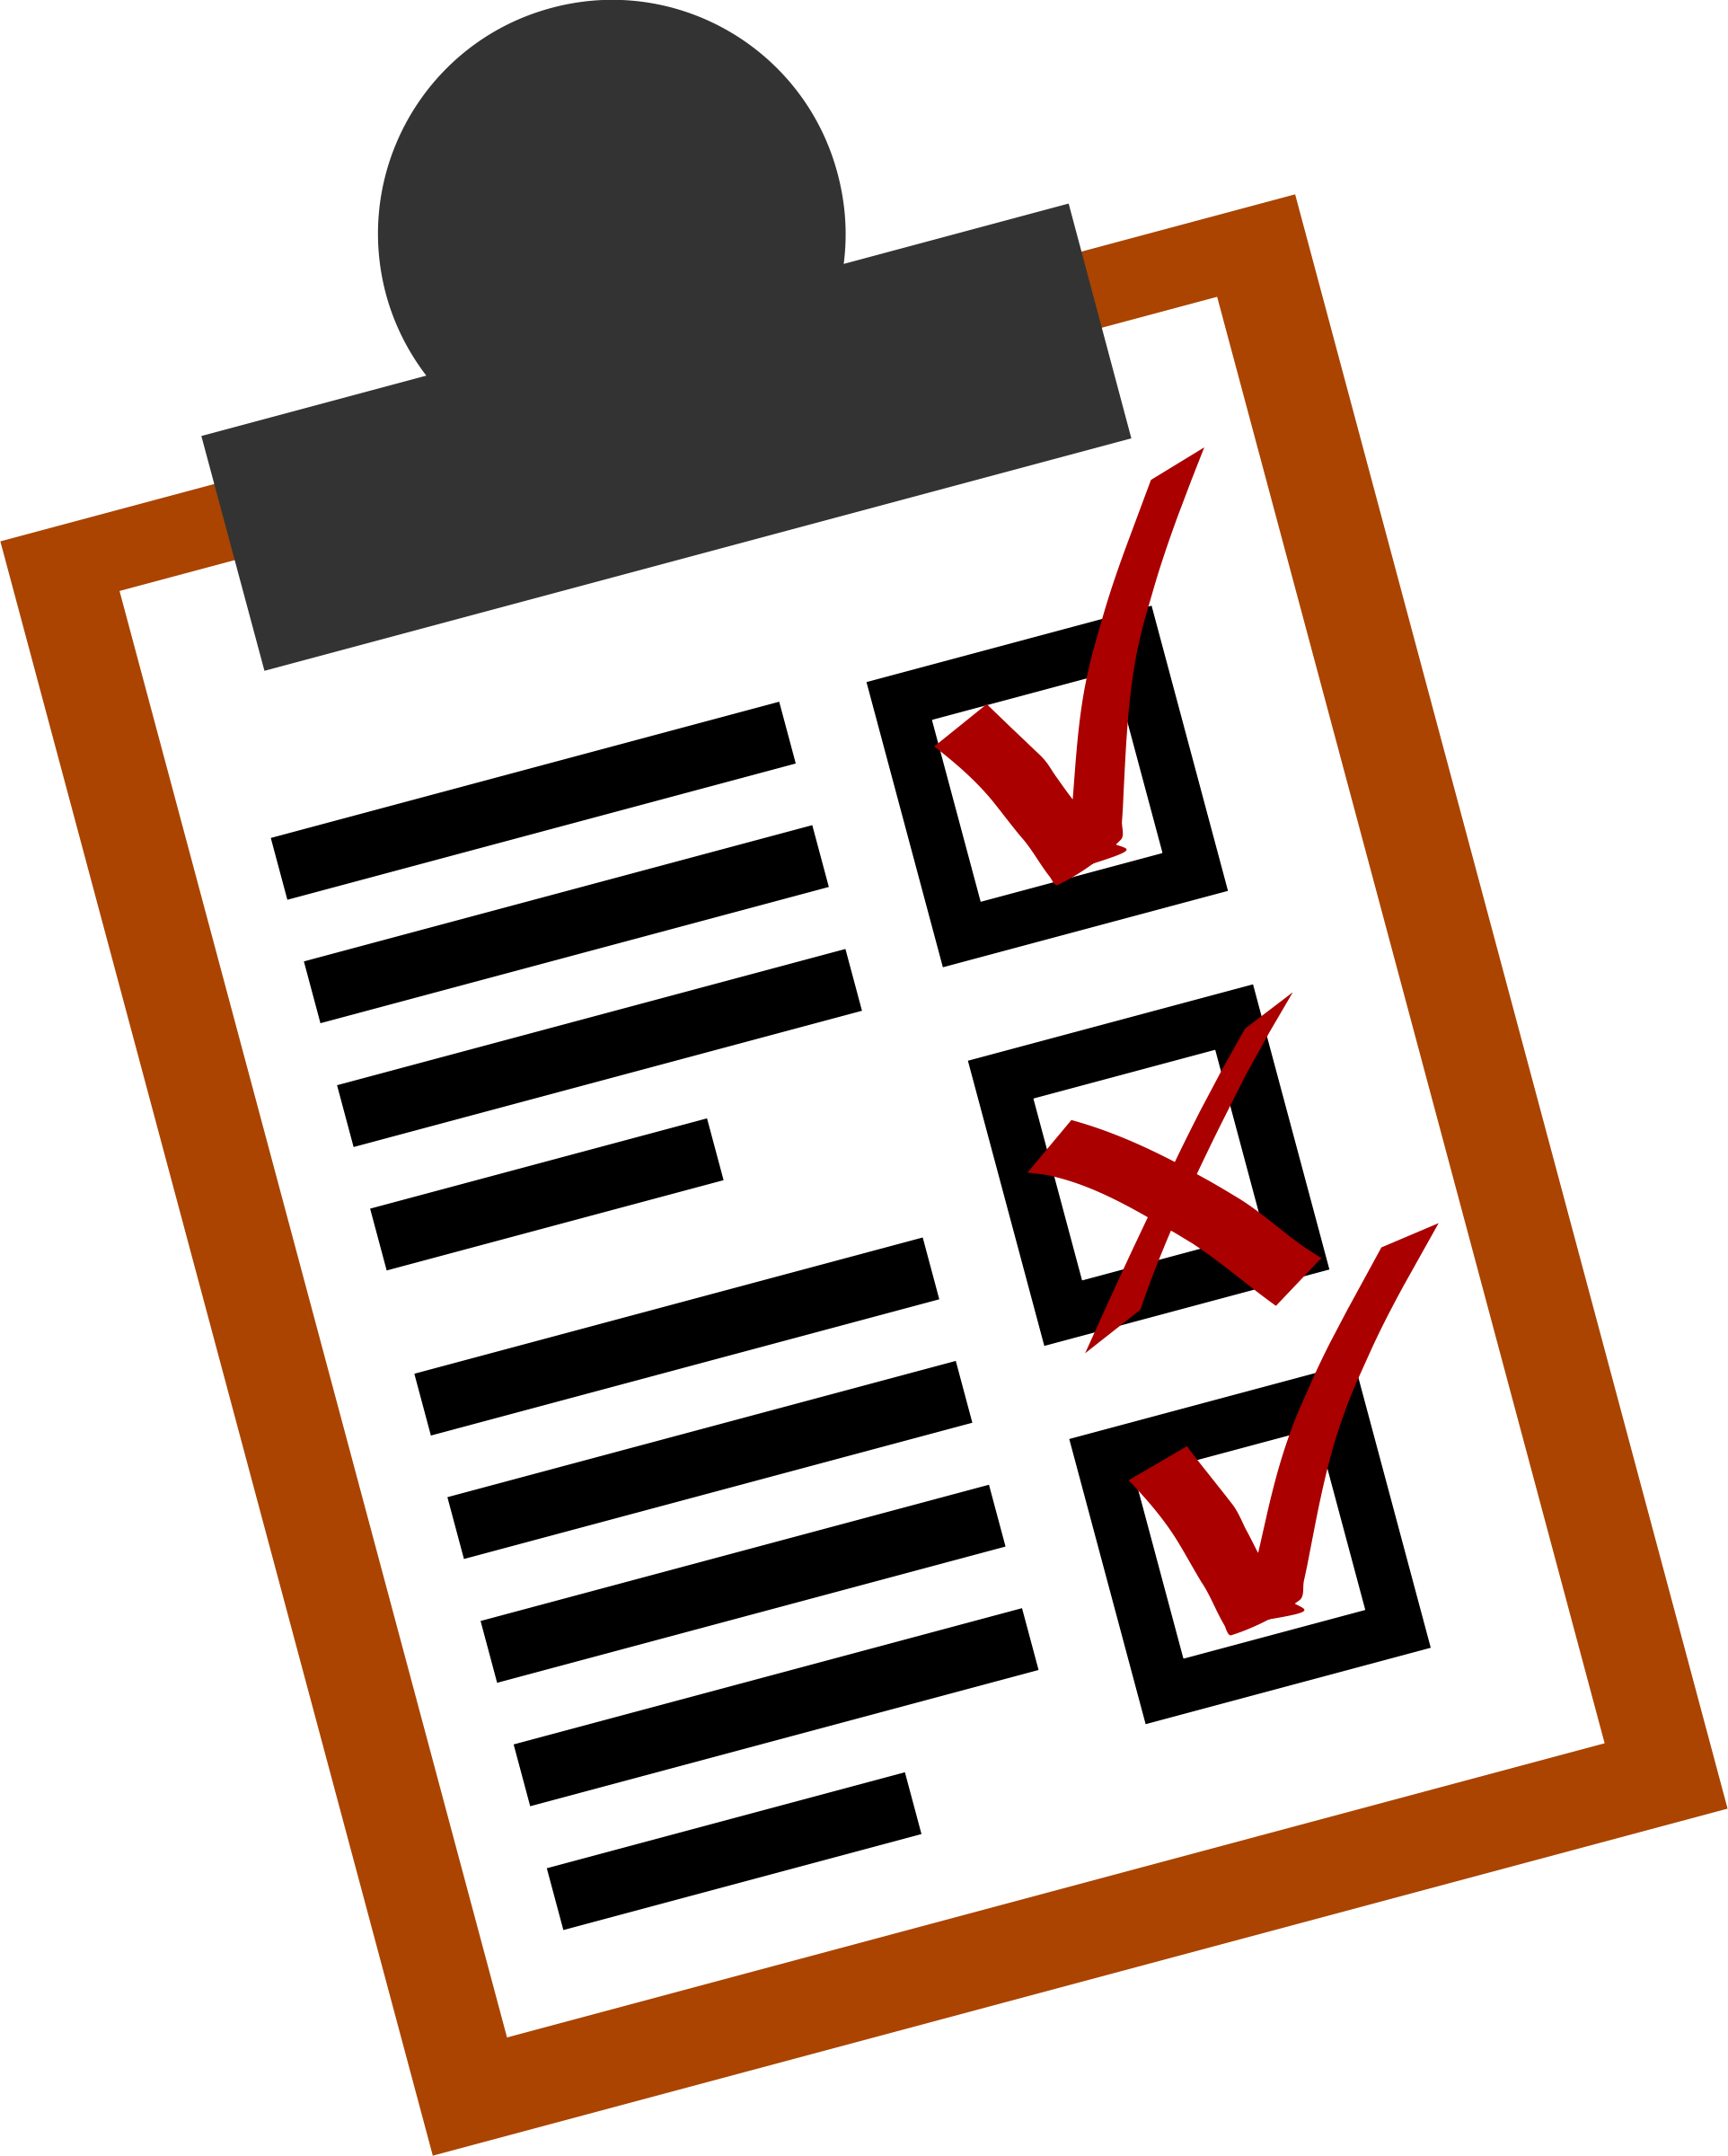 checklist vector icon | clipart panda - free clipart images